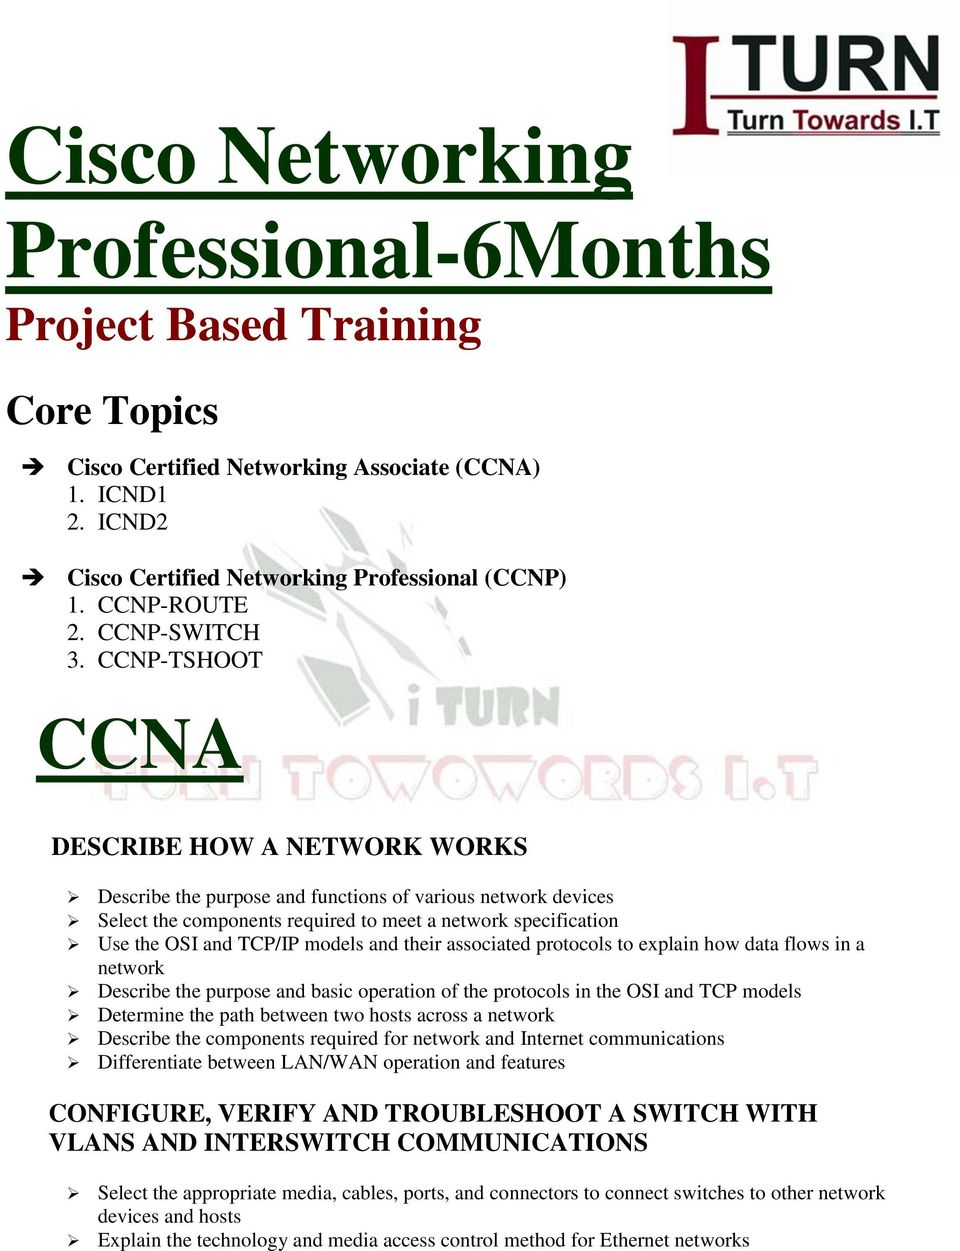 CCNP-TSHOOT CCNA DESCRIBE HOW A NETWORK WORKS Describe the purpose and functions of various network devices Select the components required to meet a network specification Use the OSI and TCP/IP